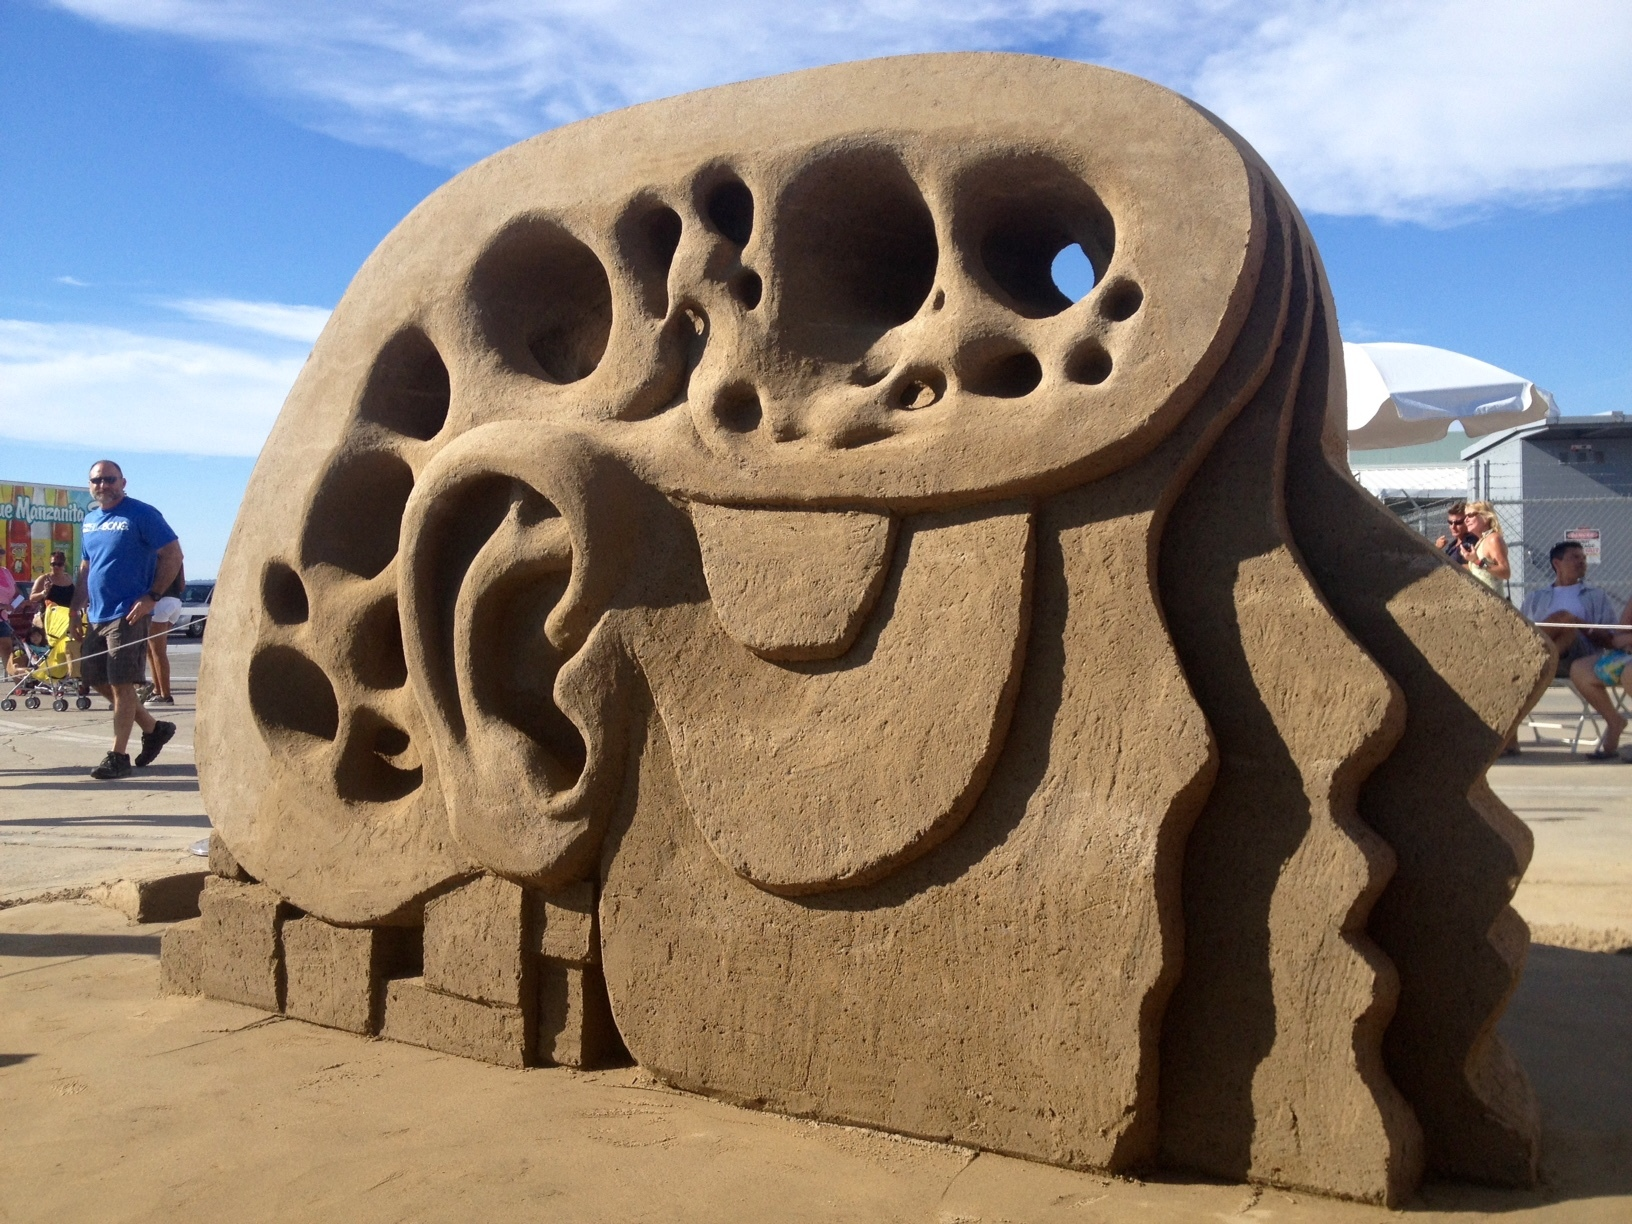 San Diego sand sculpture by Rusty Croft